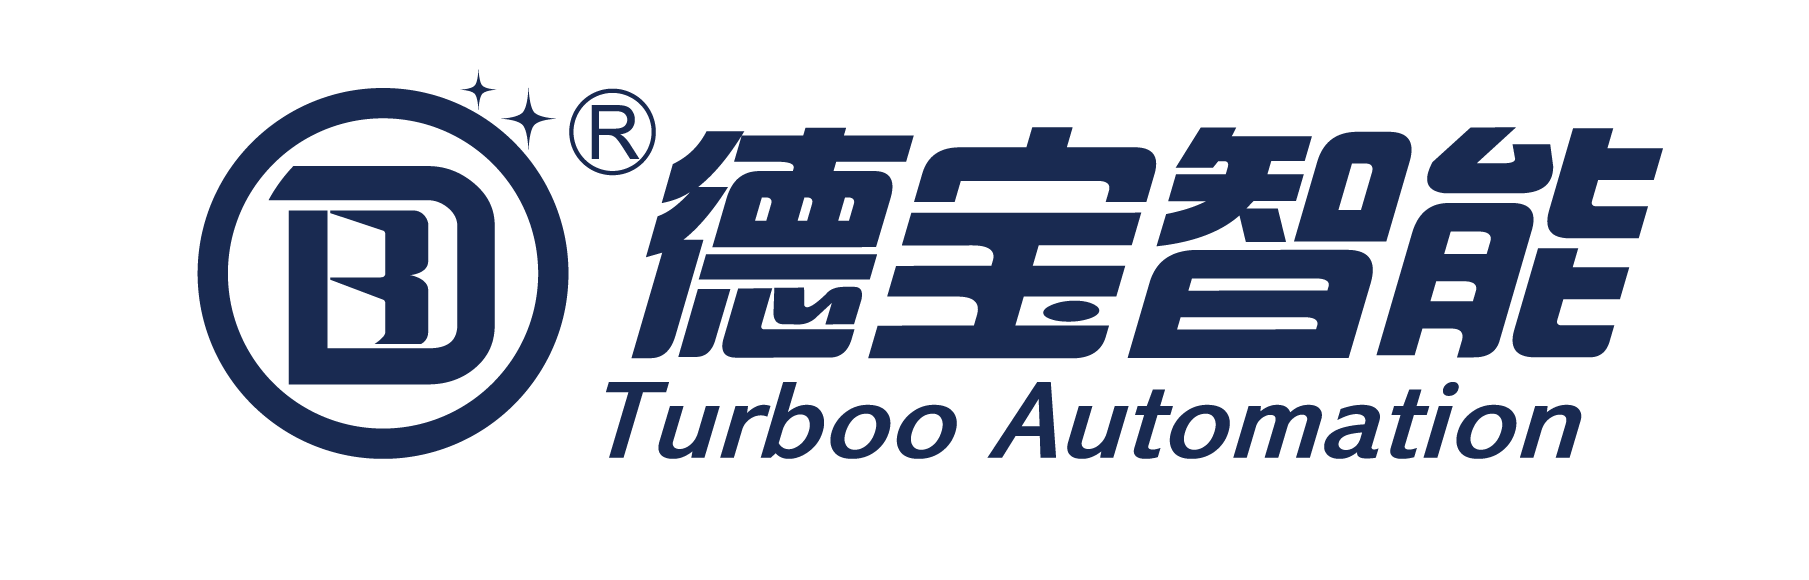 Turboo Automation Co.,Ltd